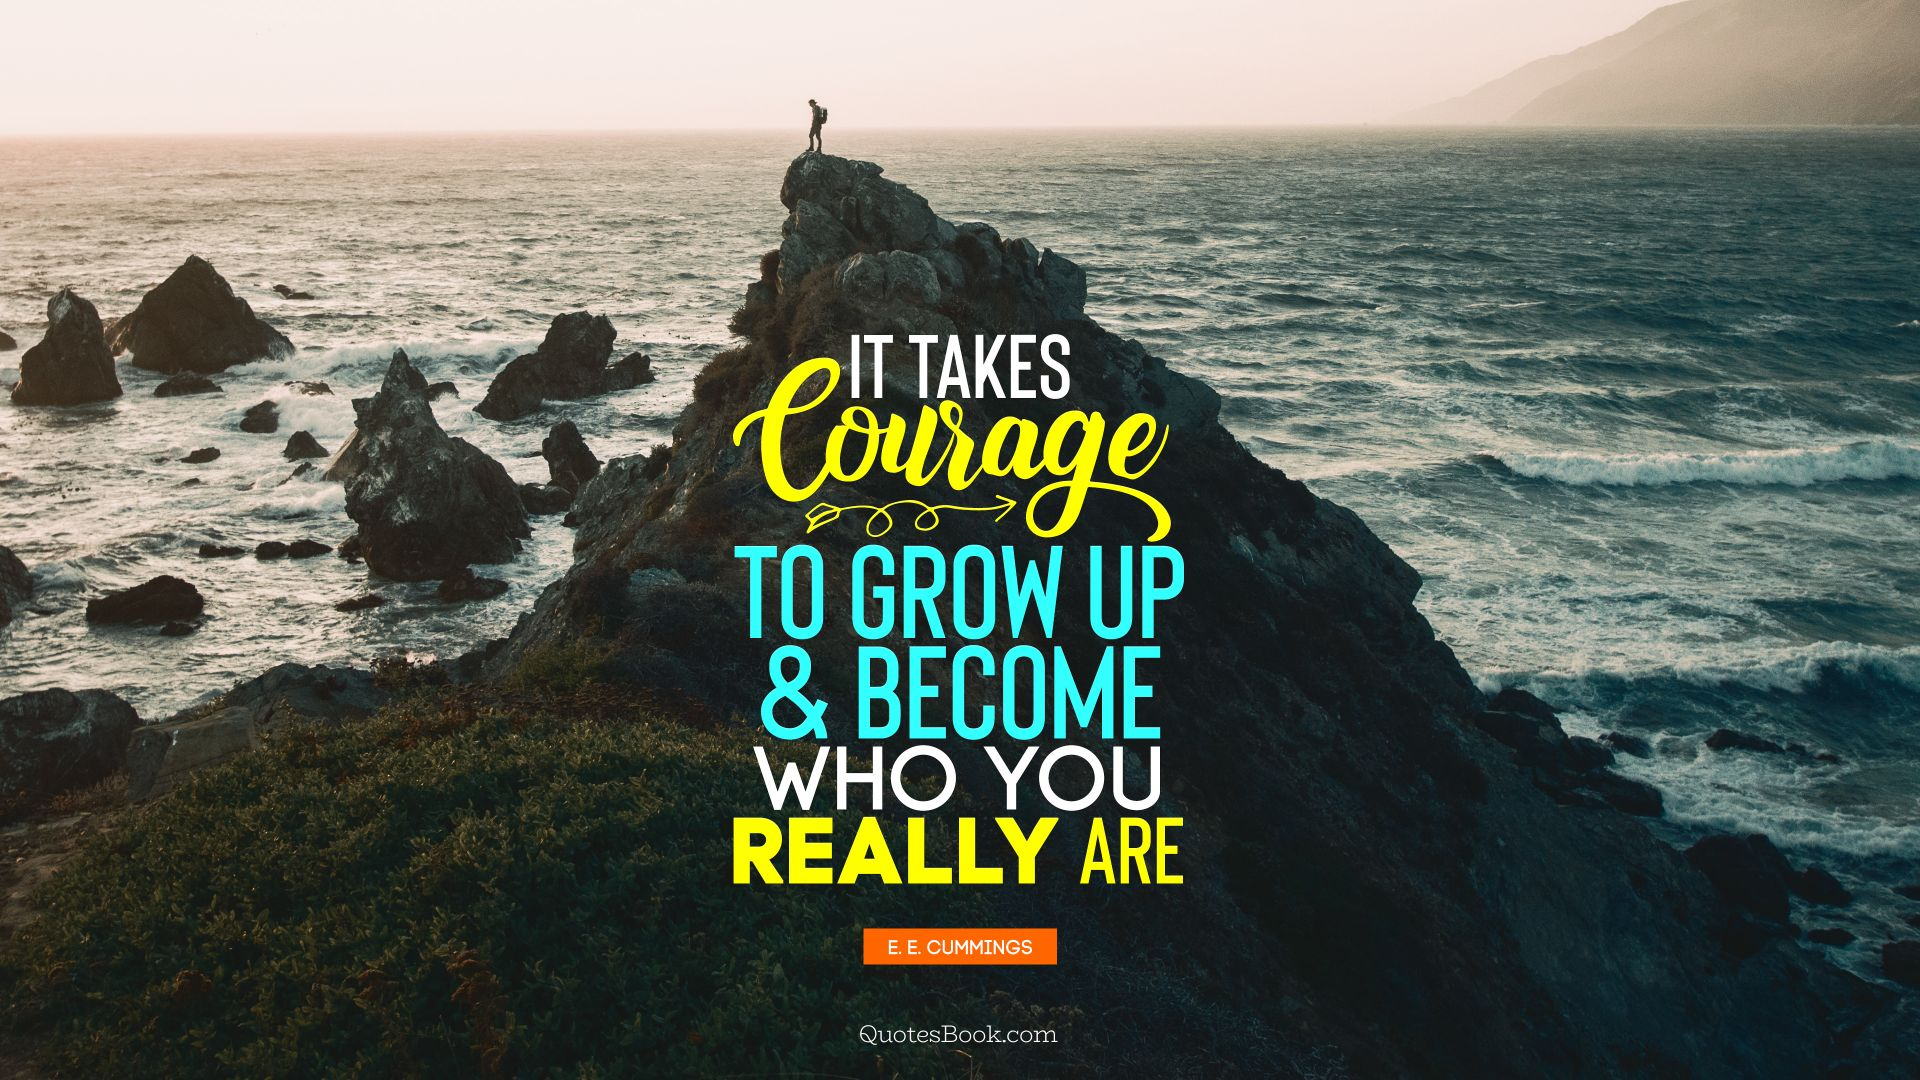 It takes courage to grow up and become who you really are. - Quote by E. E. Cummings